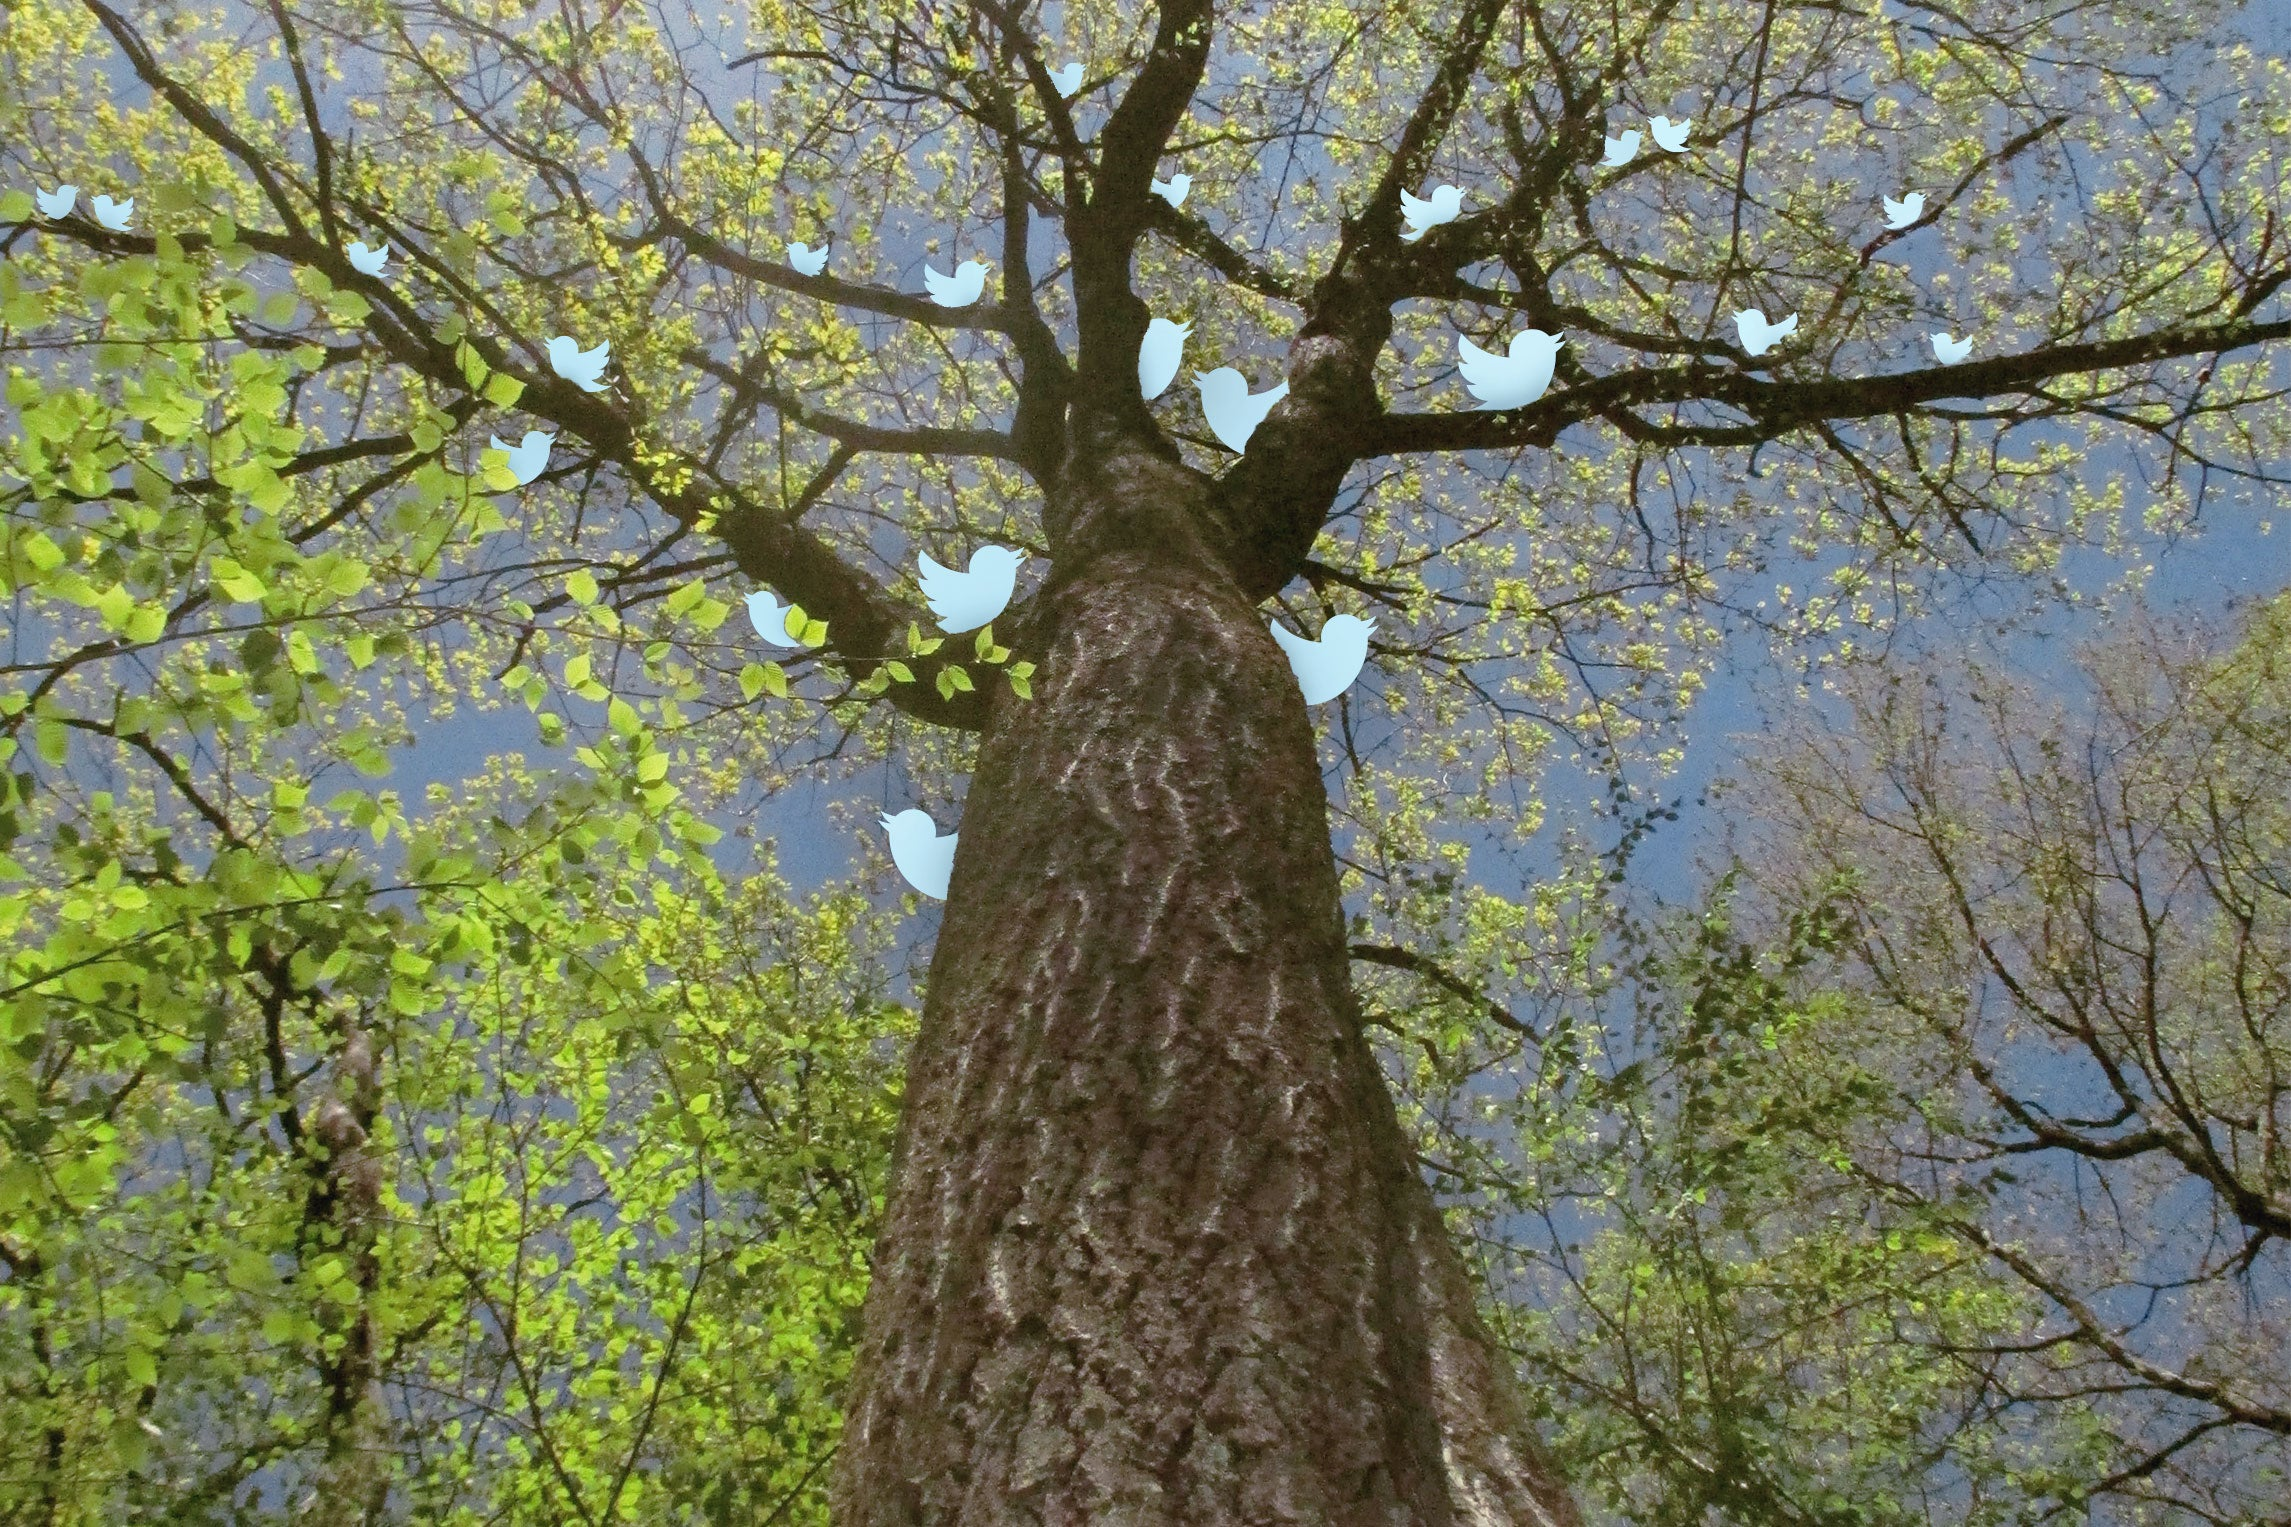 Tree in Harvard Forest live tweets climate change